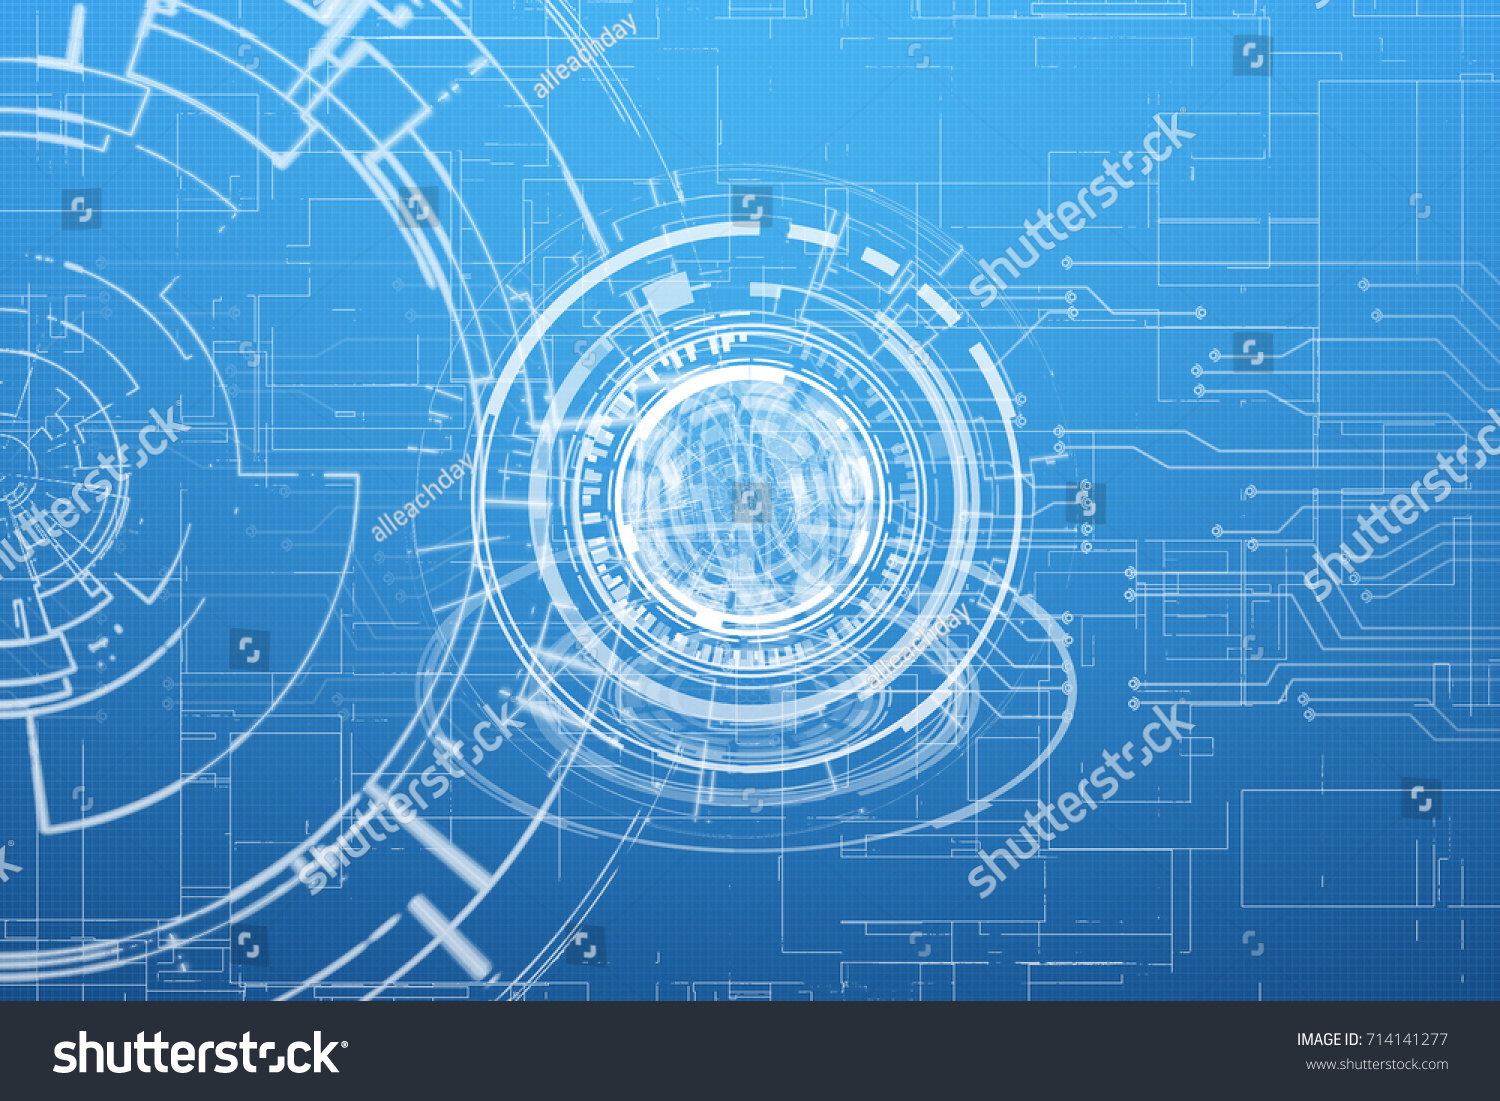 Abstract blueprint hi tech hud interface stock illustration abstract blueprint of hi tech hud interface and circuit digital technology background malvernweather Images